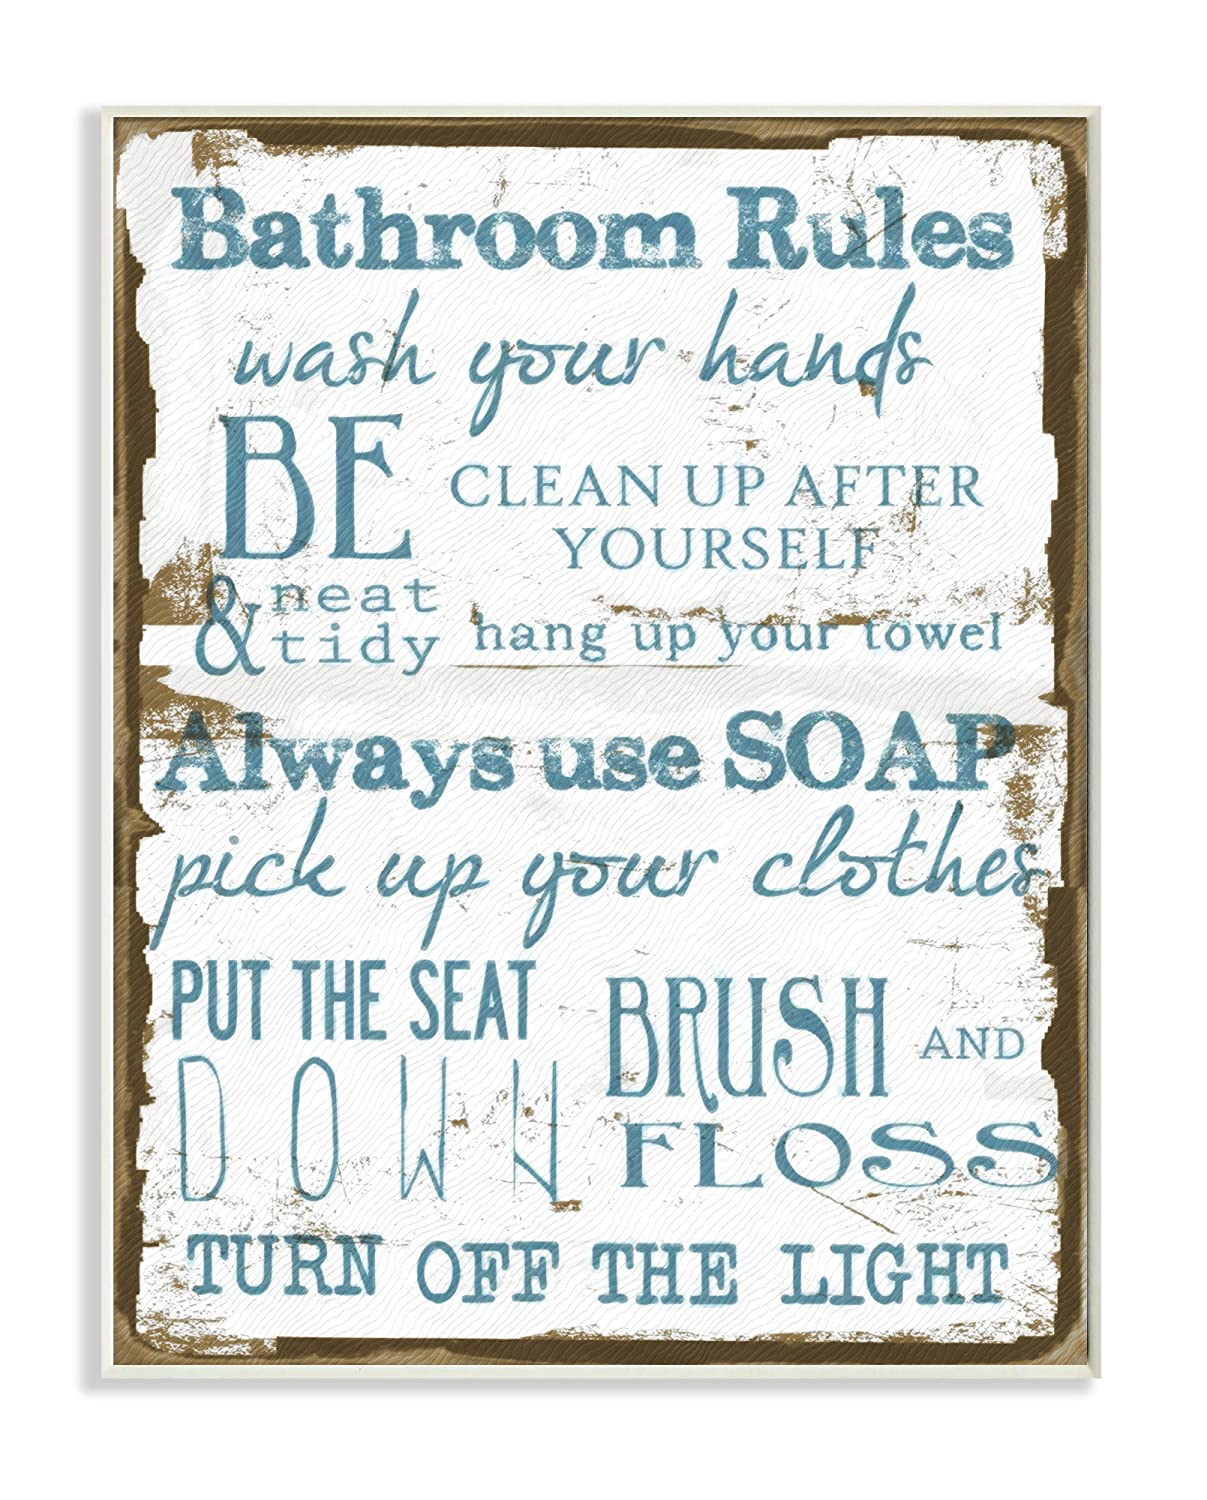 Stupell Home Décor Brown and Blue Classic Bathroom Rules Wall Plaque Art, 10 x 0.5 x 15, Proudly Made in USA